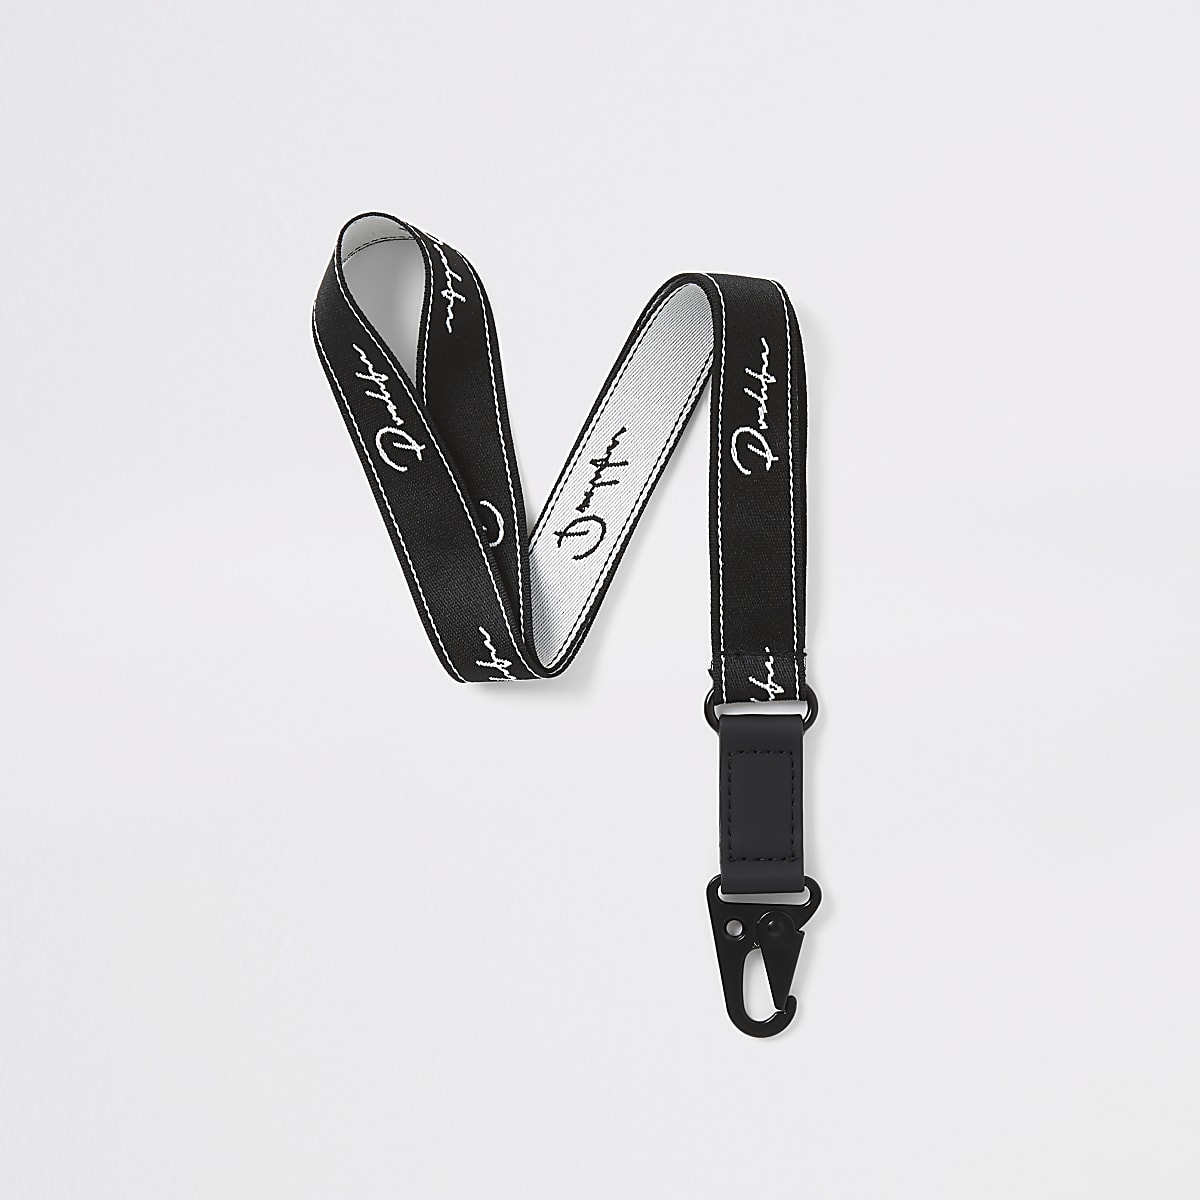 Black 'Prolific' lanyard